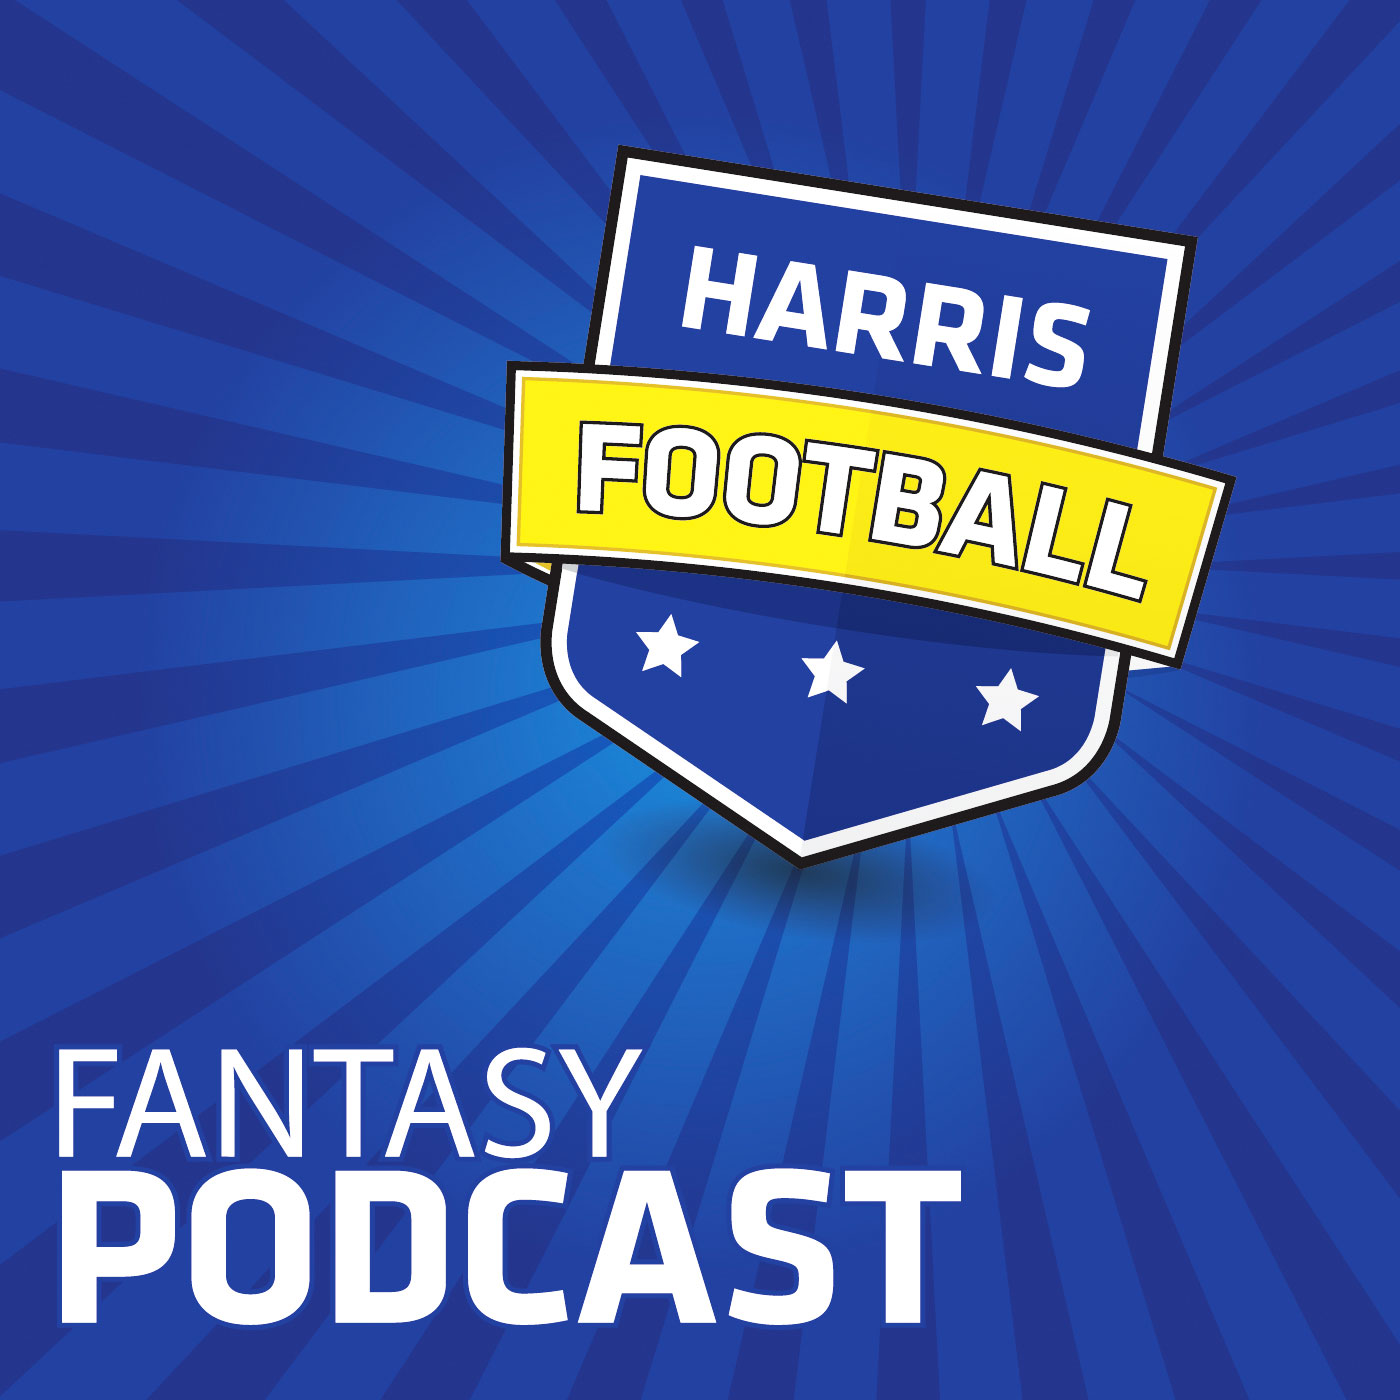 Harris Fantasy Football Podcast logo